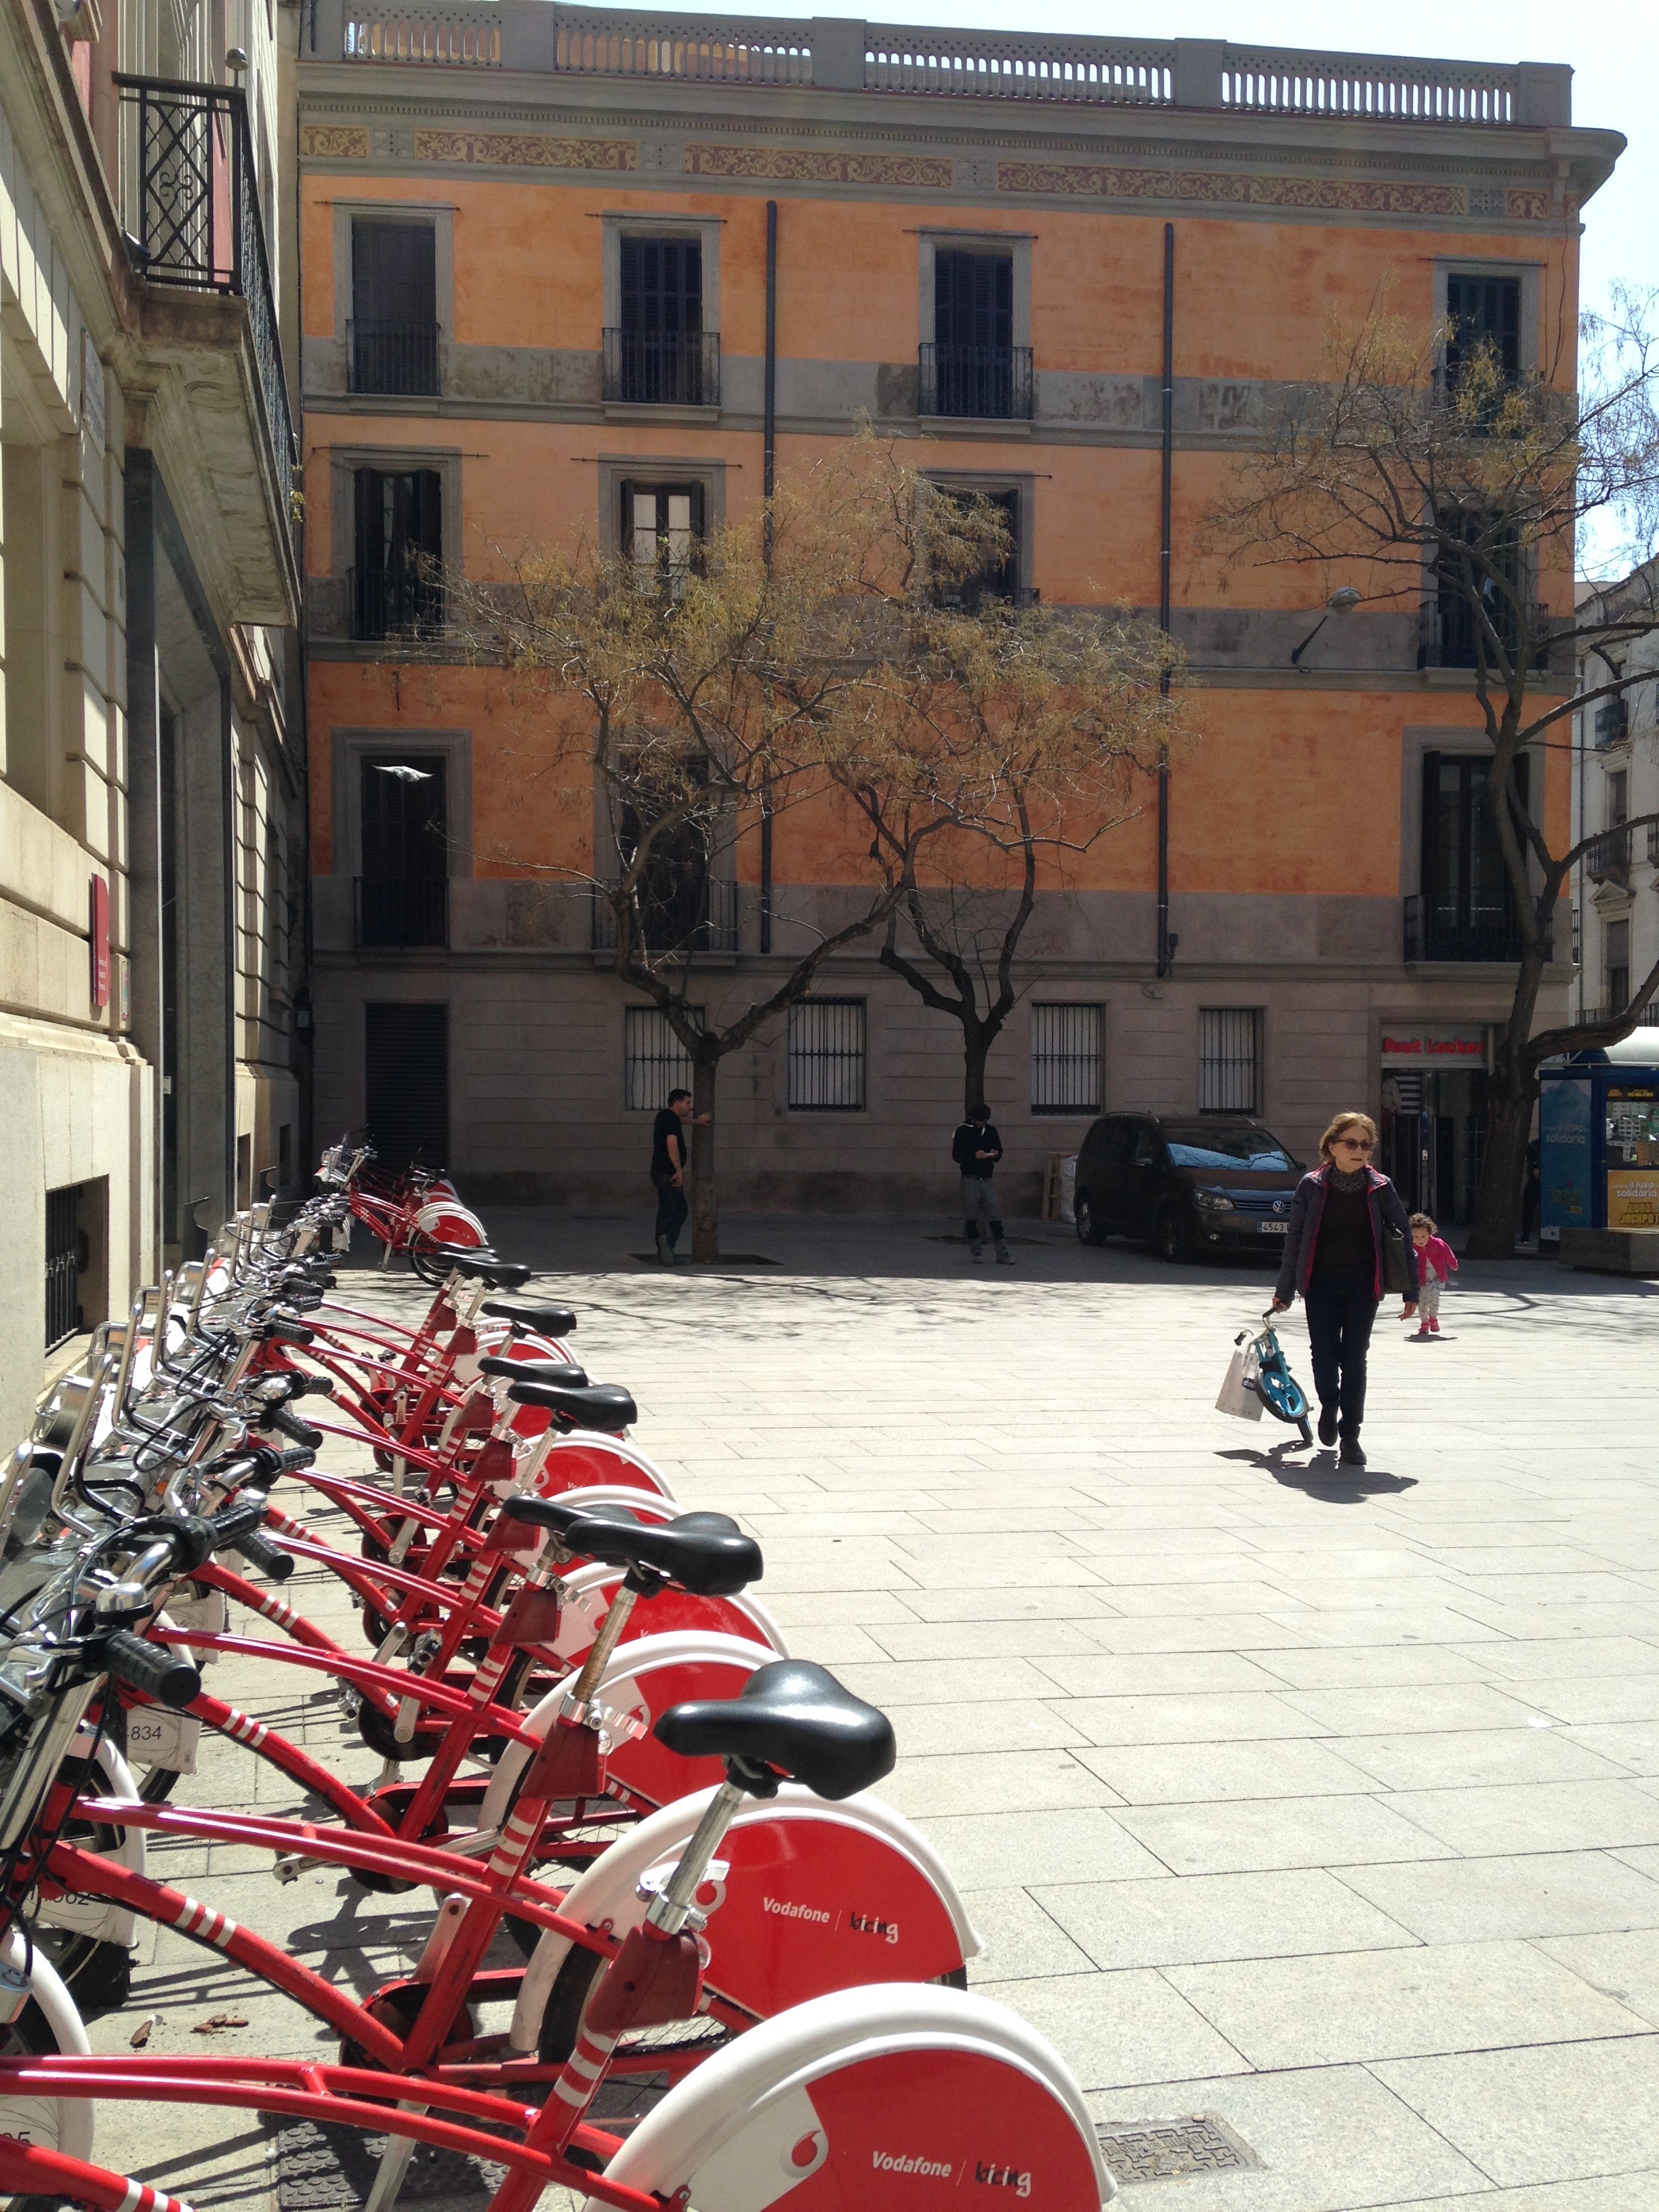 public bicycles - Barcelona